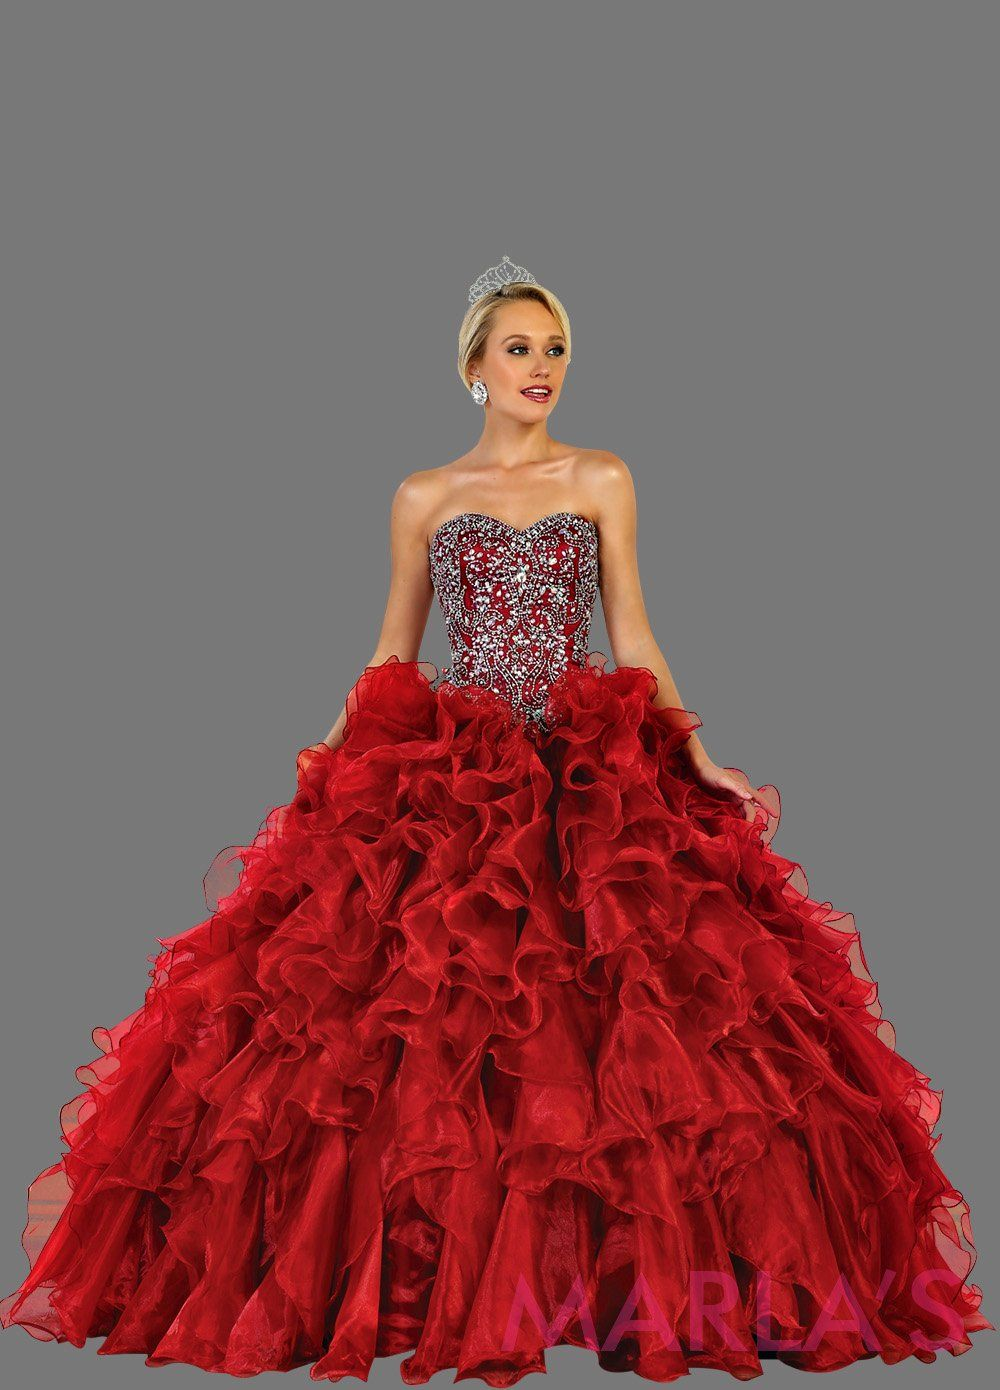 Long strapless burgundy red ball gown with rhinestone top and ruffle skirt. Perfect for Engagement dress, Quinceanera, Sweet 16, Sweet 15, Debut, and dark red Wedding Reception Dress. Available in plus sizes